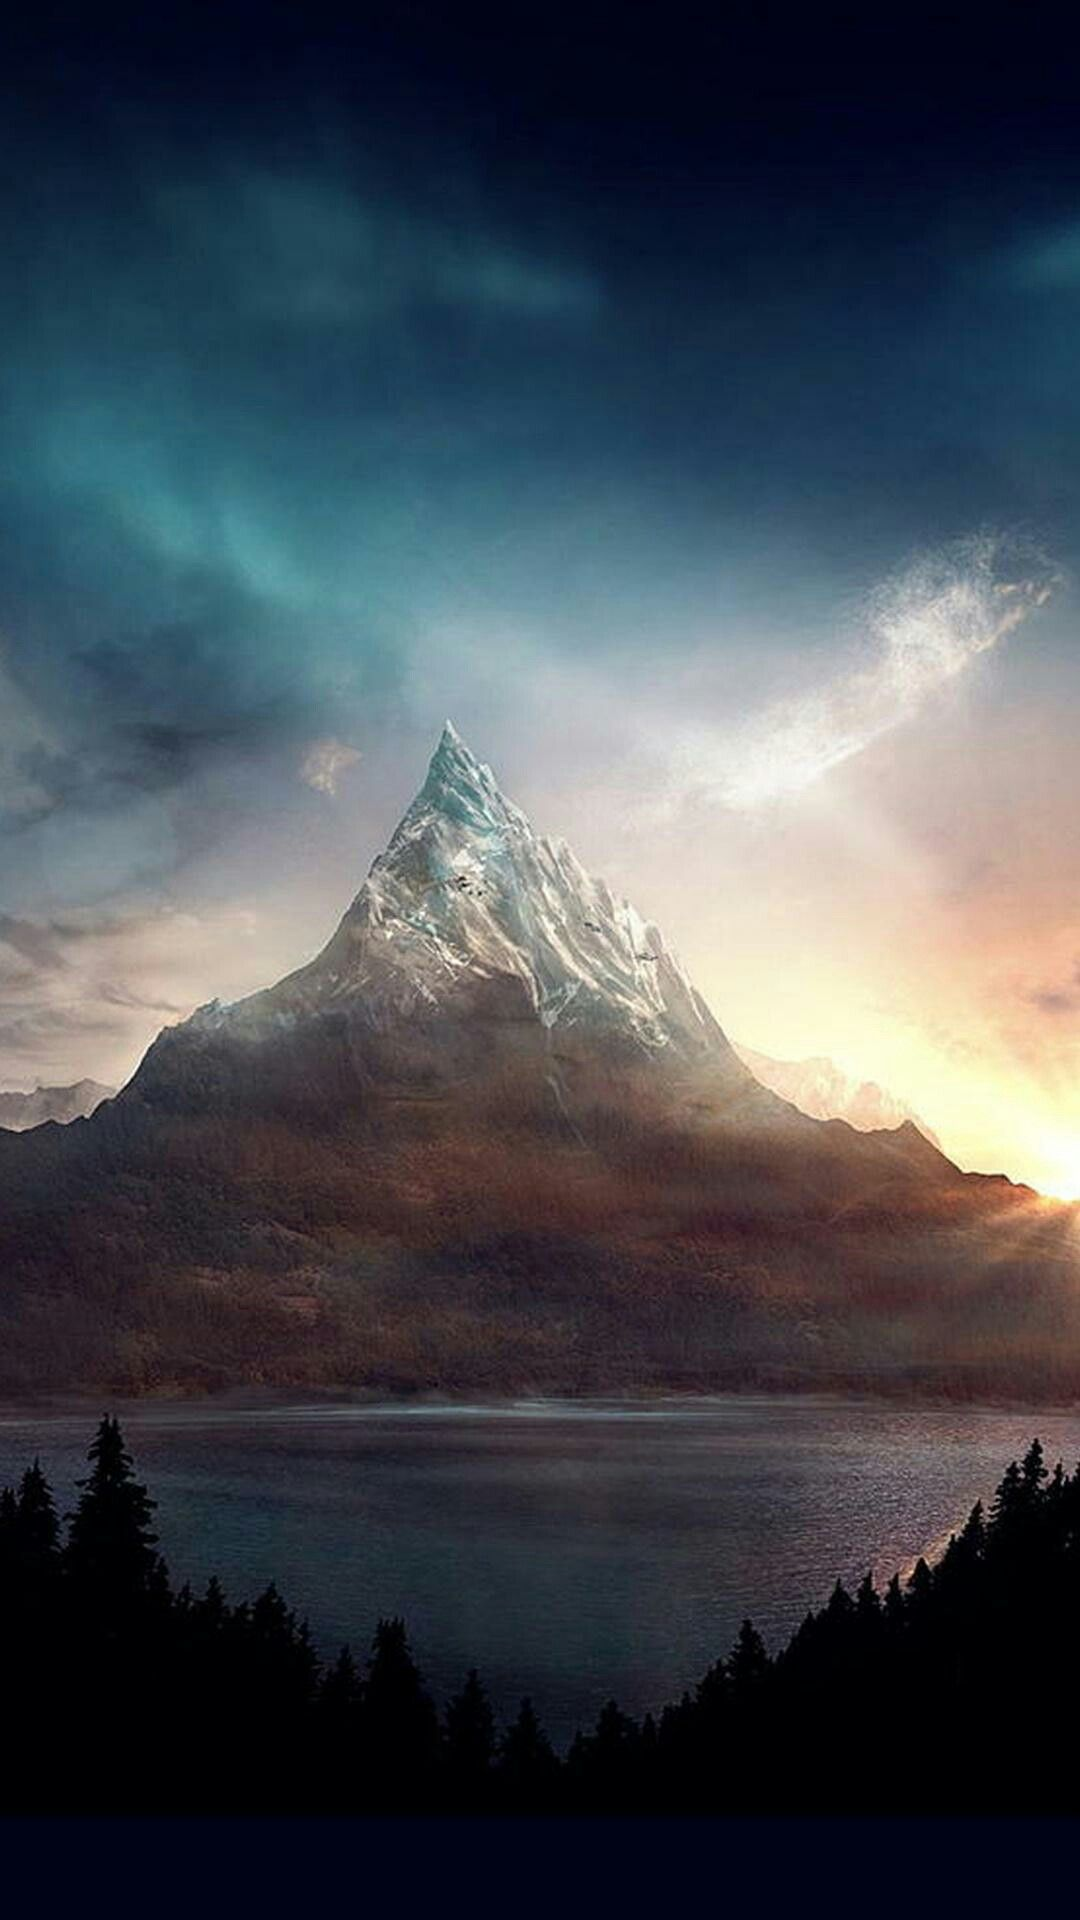 Click To Join Lord Of The Rings Fandom On Thefandome Com Lotr Series Fantasy Fandom Thefandome Beautiful Nature The Hobbit Middle Earth